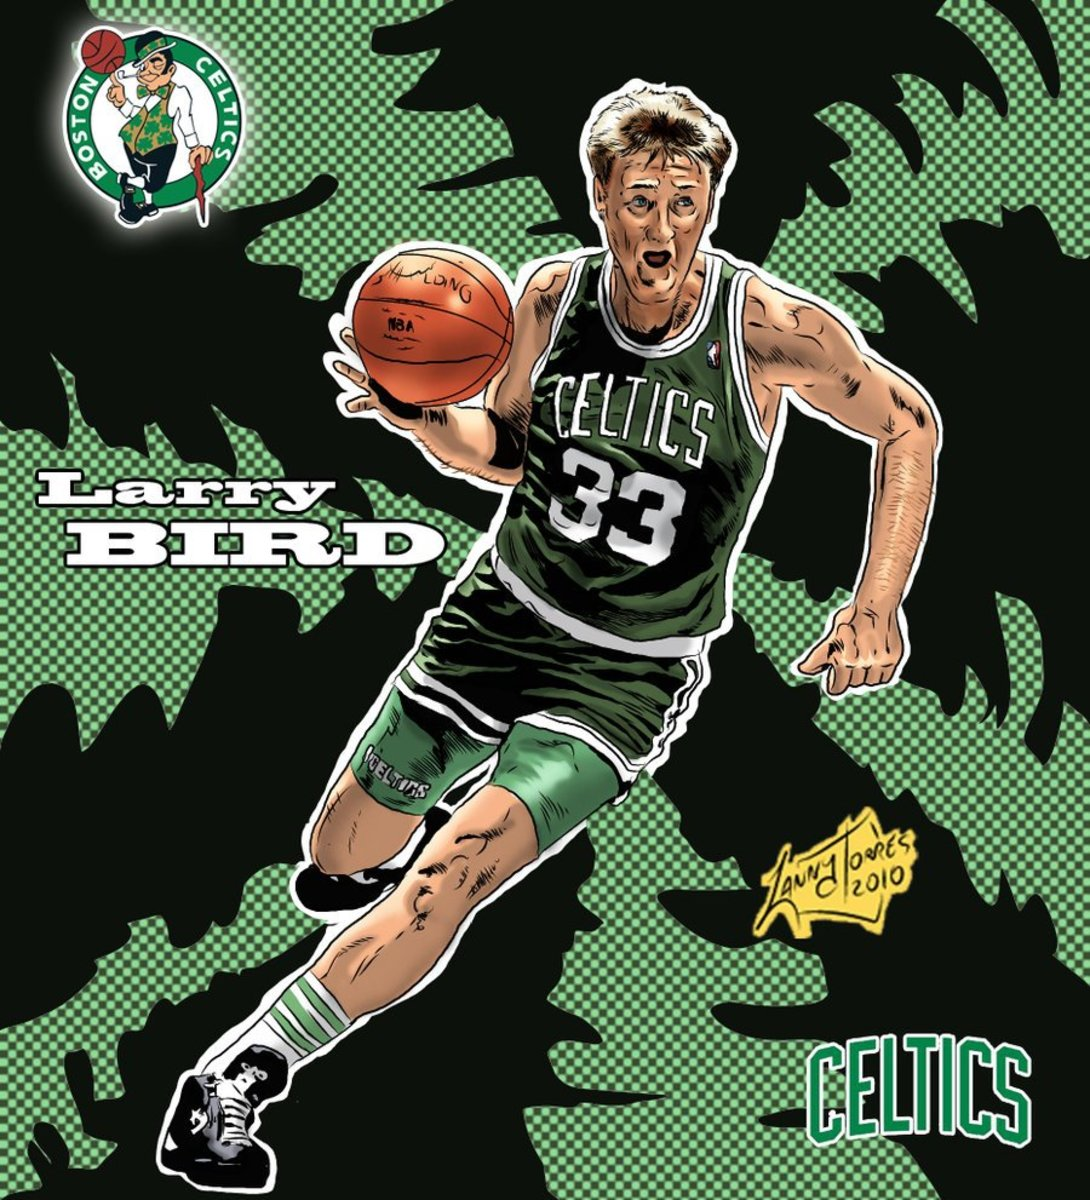 """You can make all the excuses you want, but if you're not mentally tough and you're not prepared to play every night, you're not going to win."" ~Larry Bird"